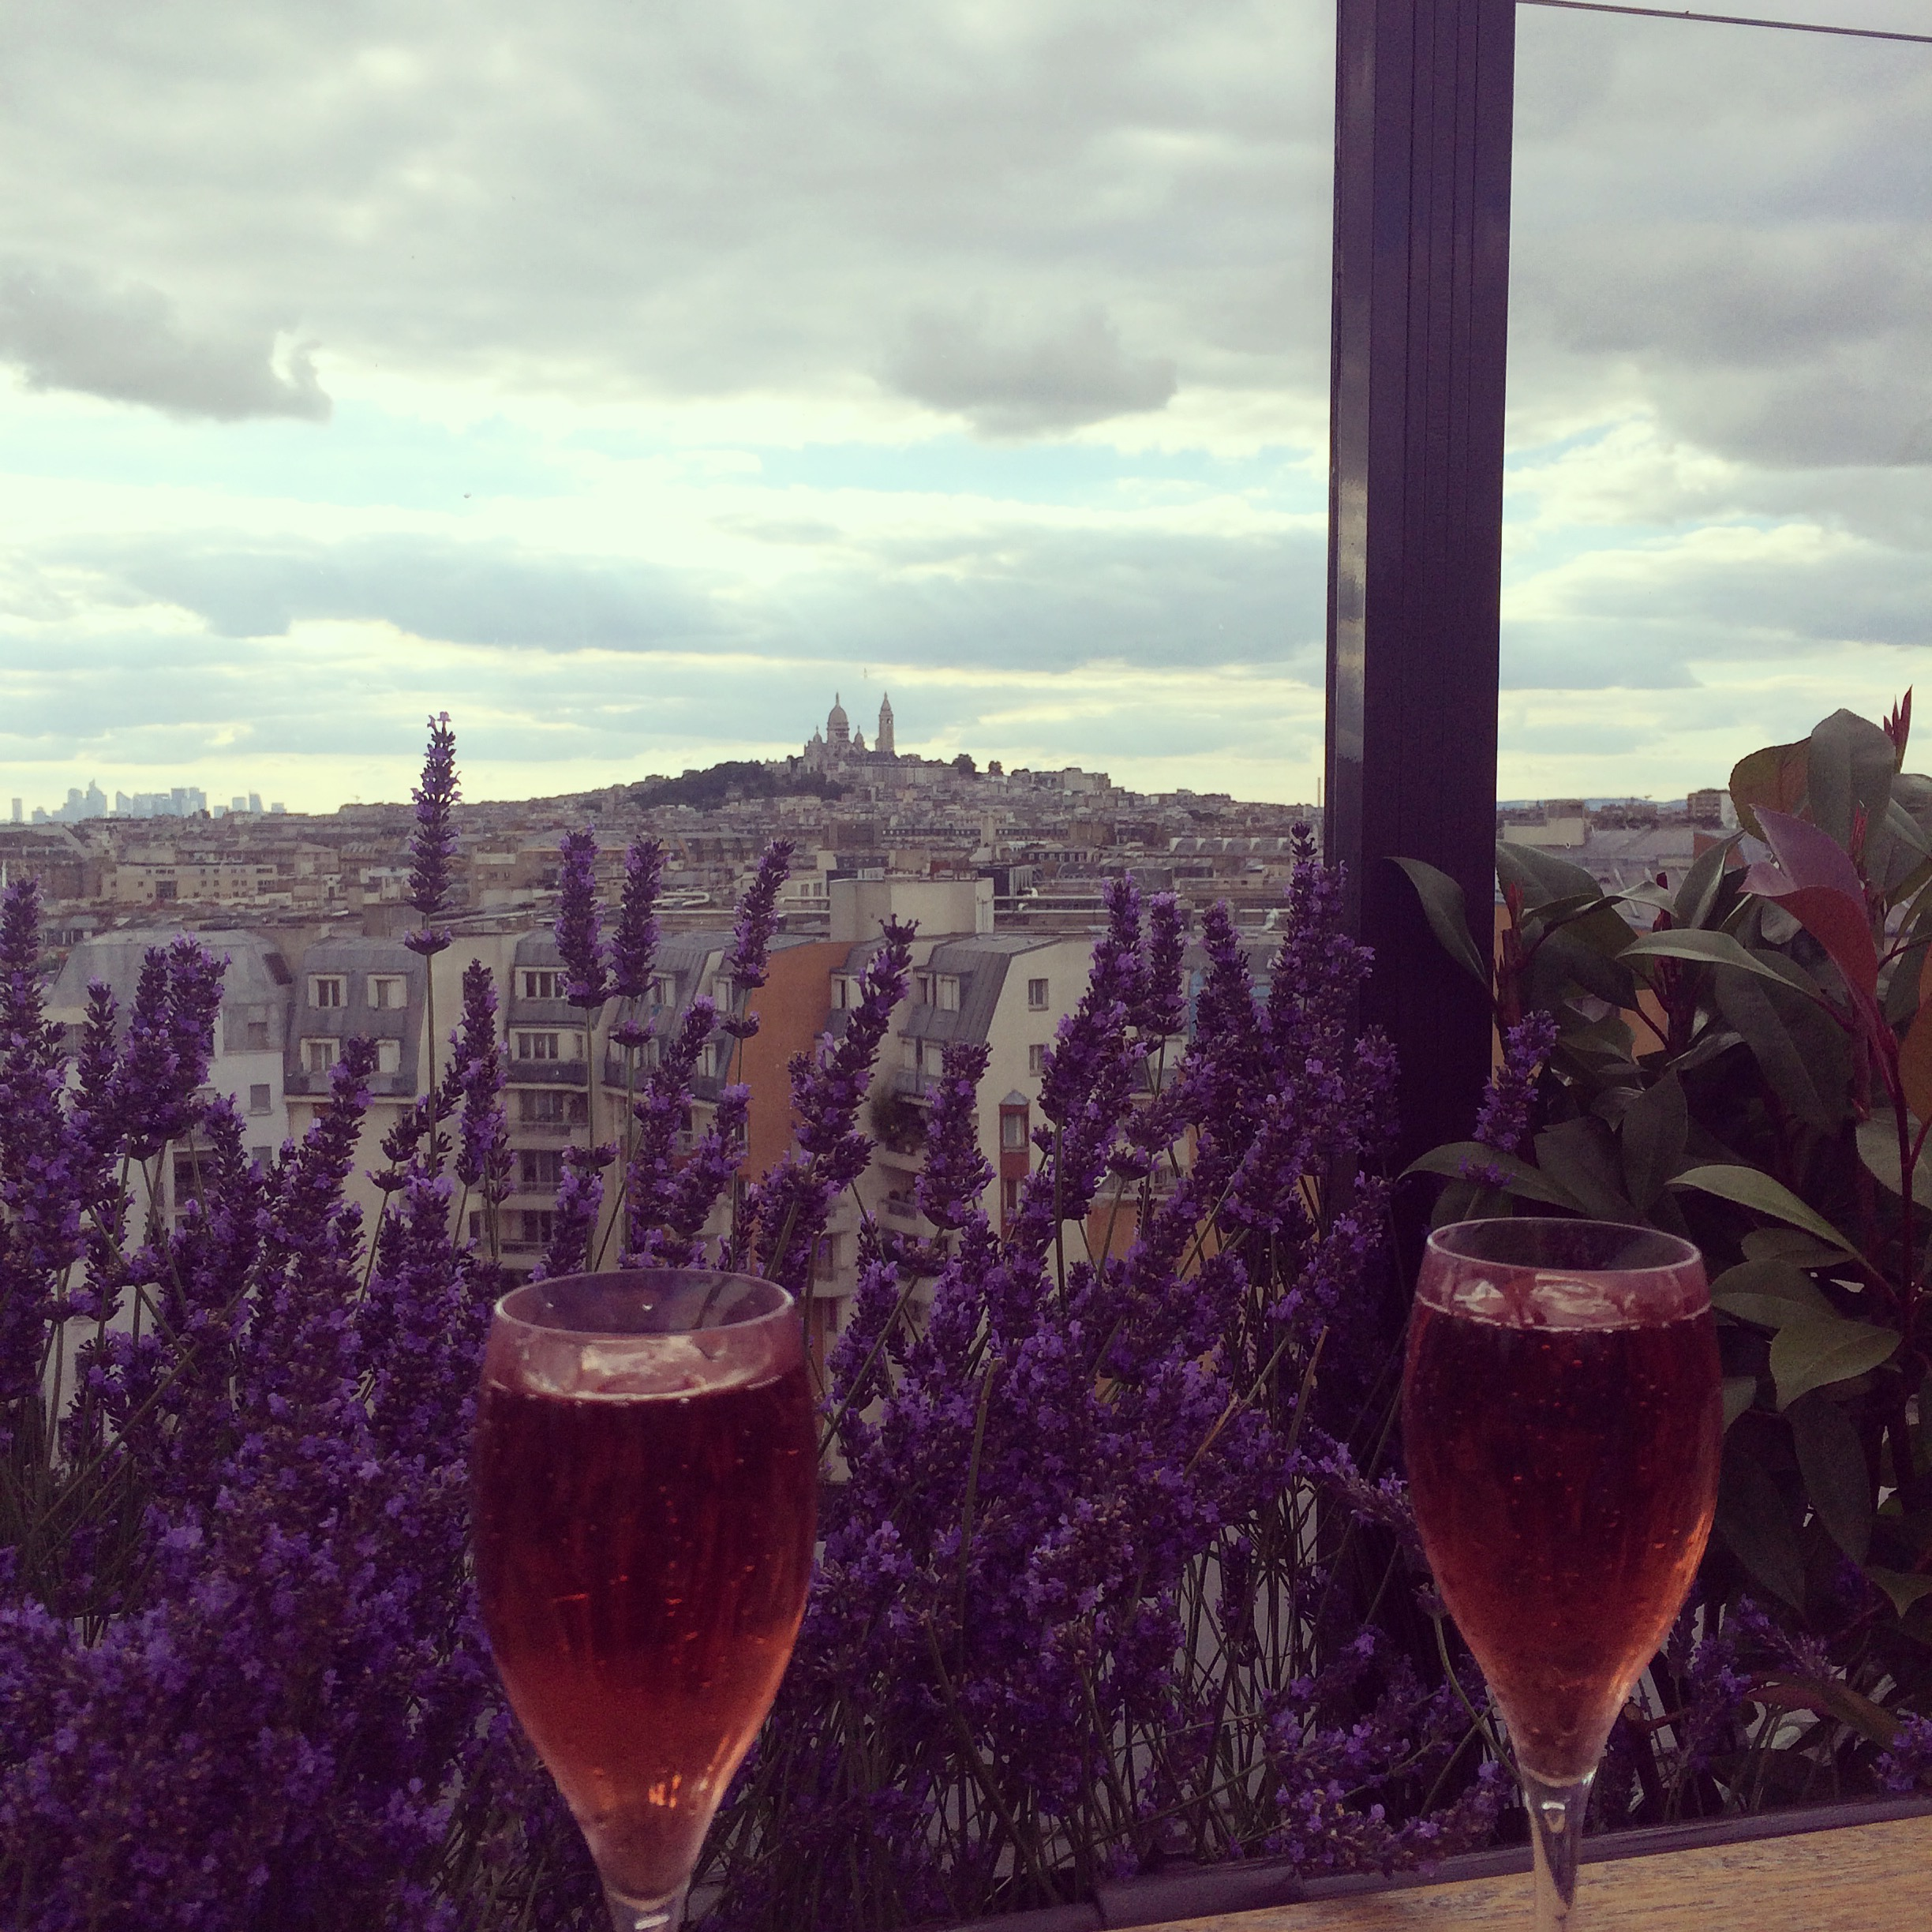 10 places for a fabulous Paris getaway - Summer Edition